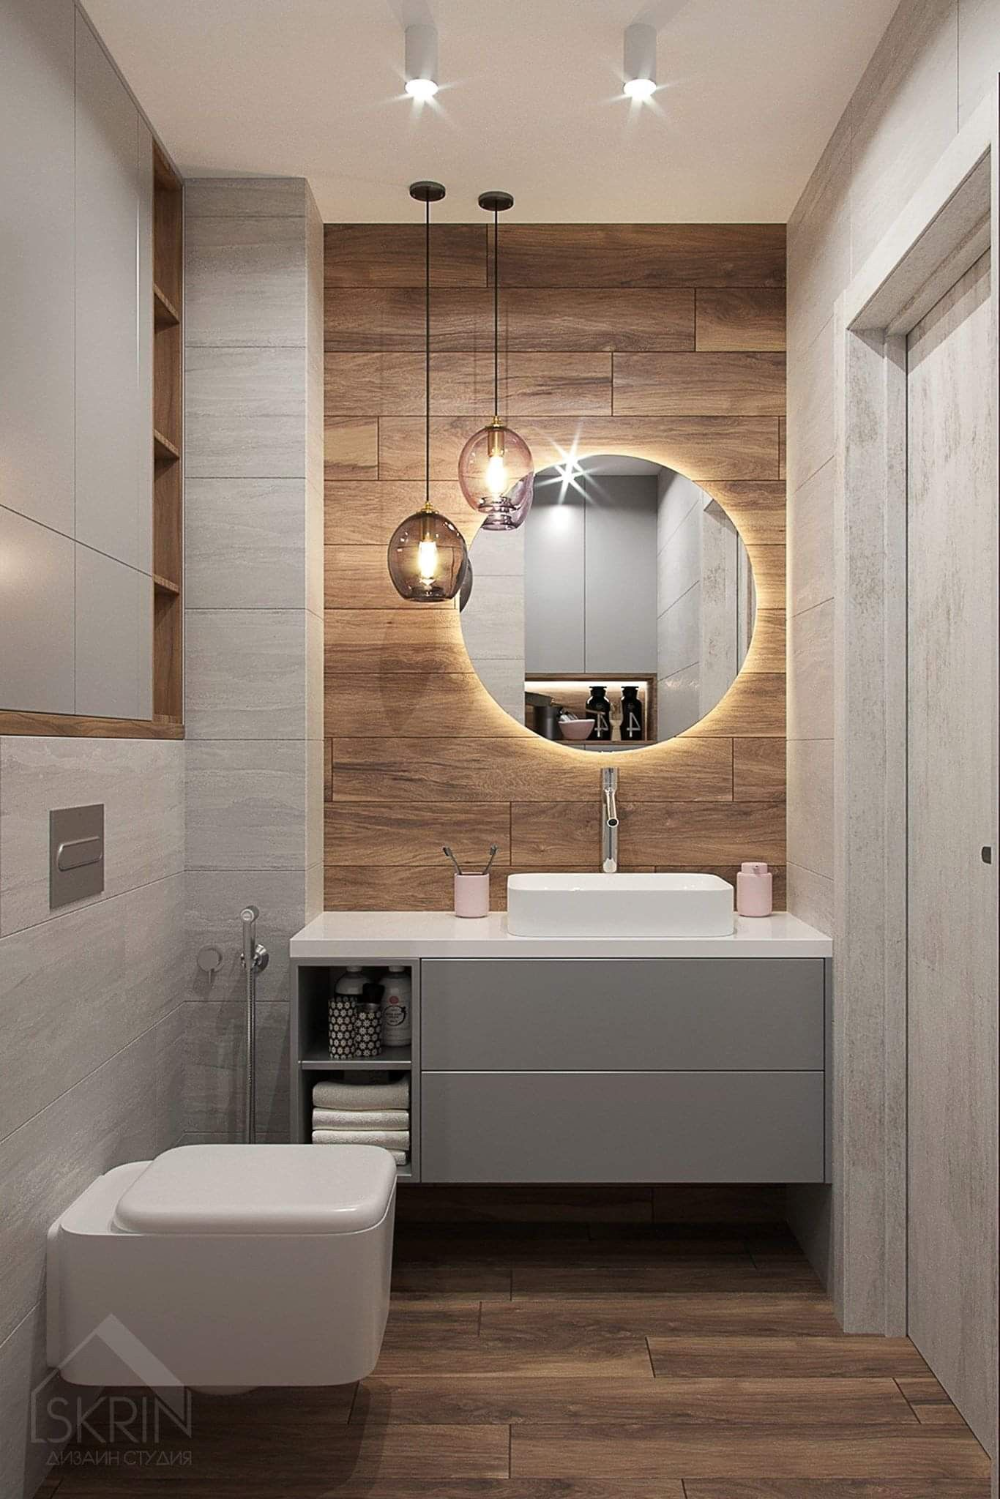 Pin By Jades Dream On Bathrooms Contemporary Bathroom Tiles Bathroom Design Small Luxury Bathroom